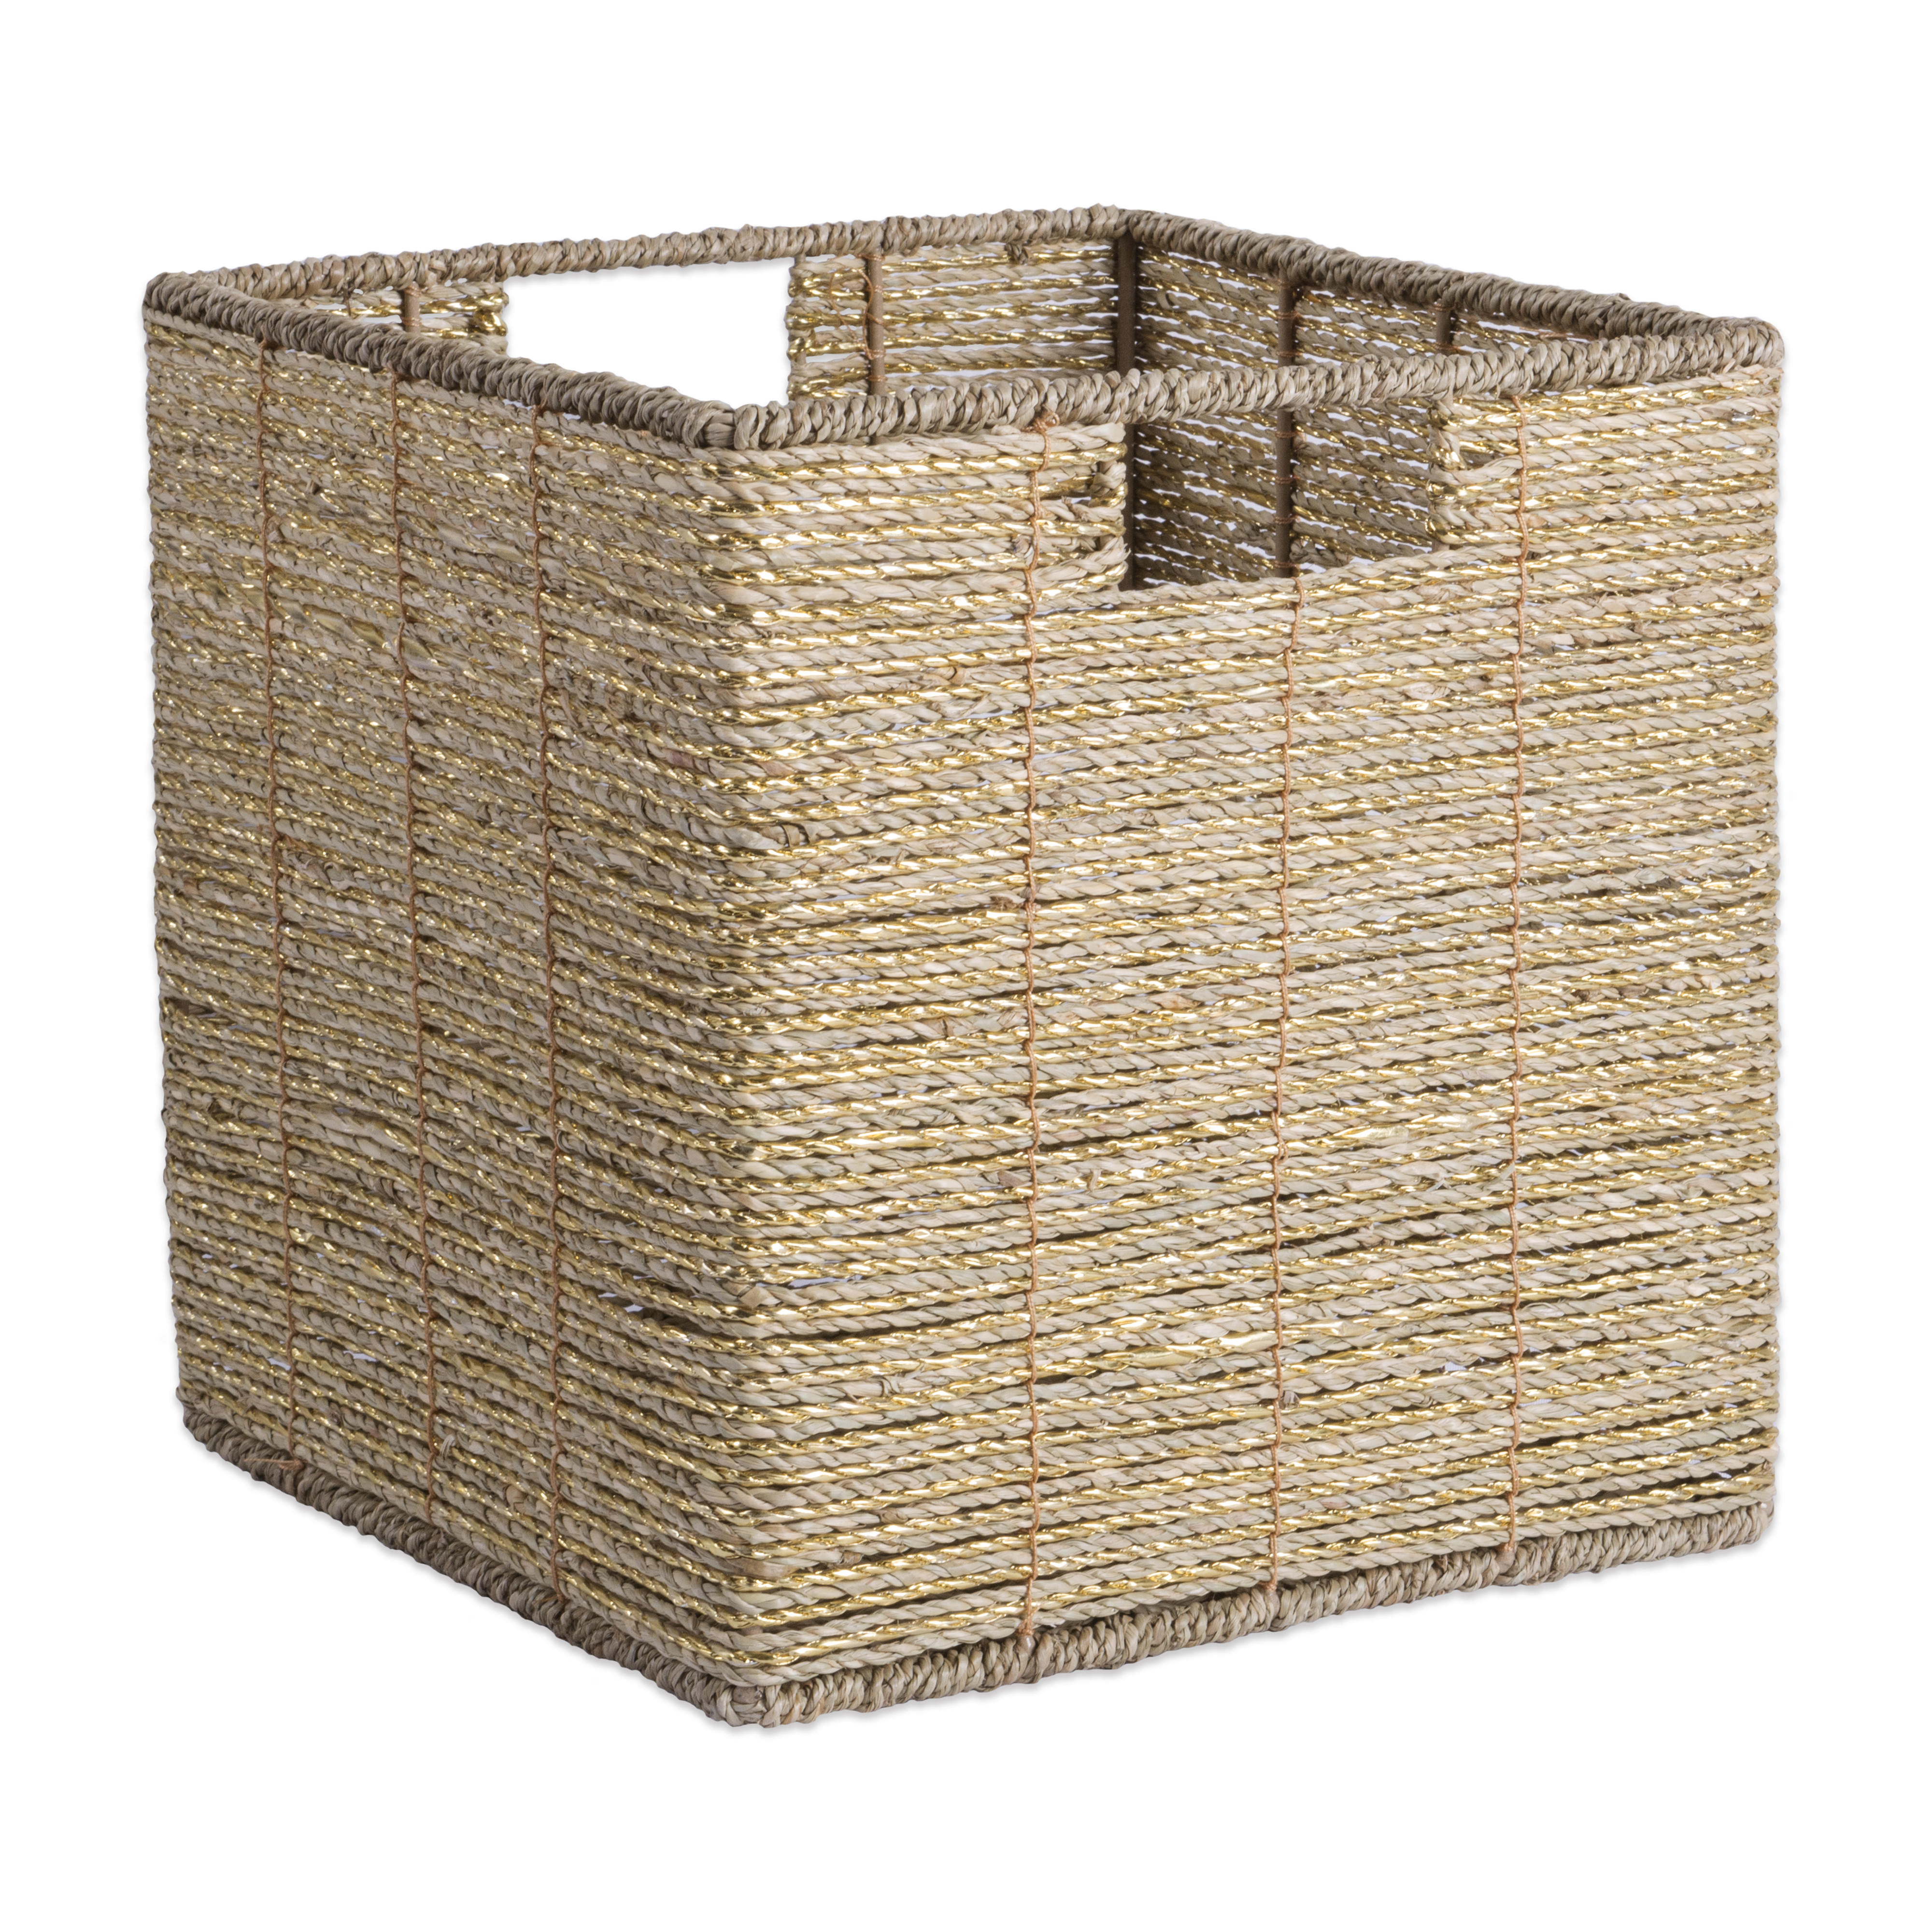 """Design Imports Seagrass Cube Metallic Gold Square, 11""""x11""""x11"""", 100% Natural Woven Paper, Gold"""